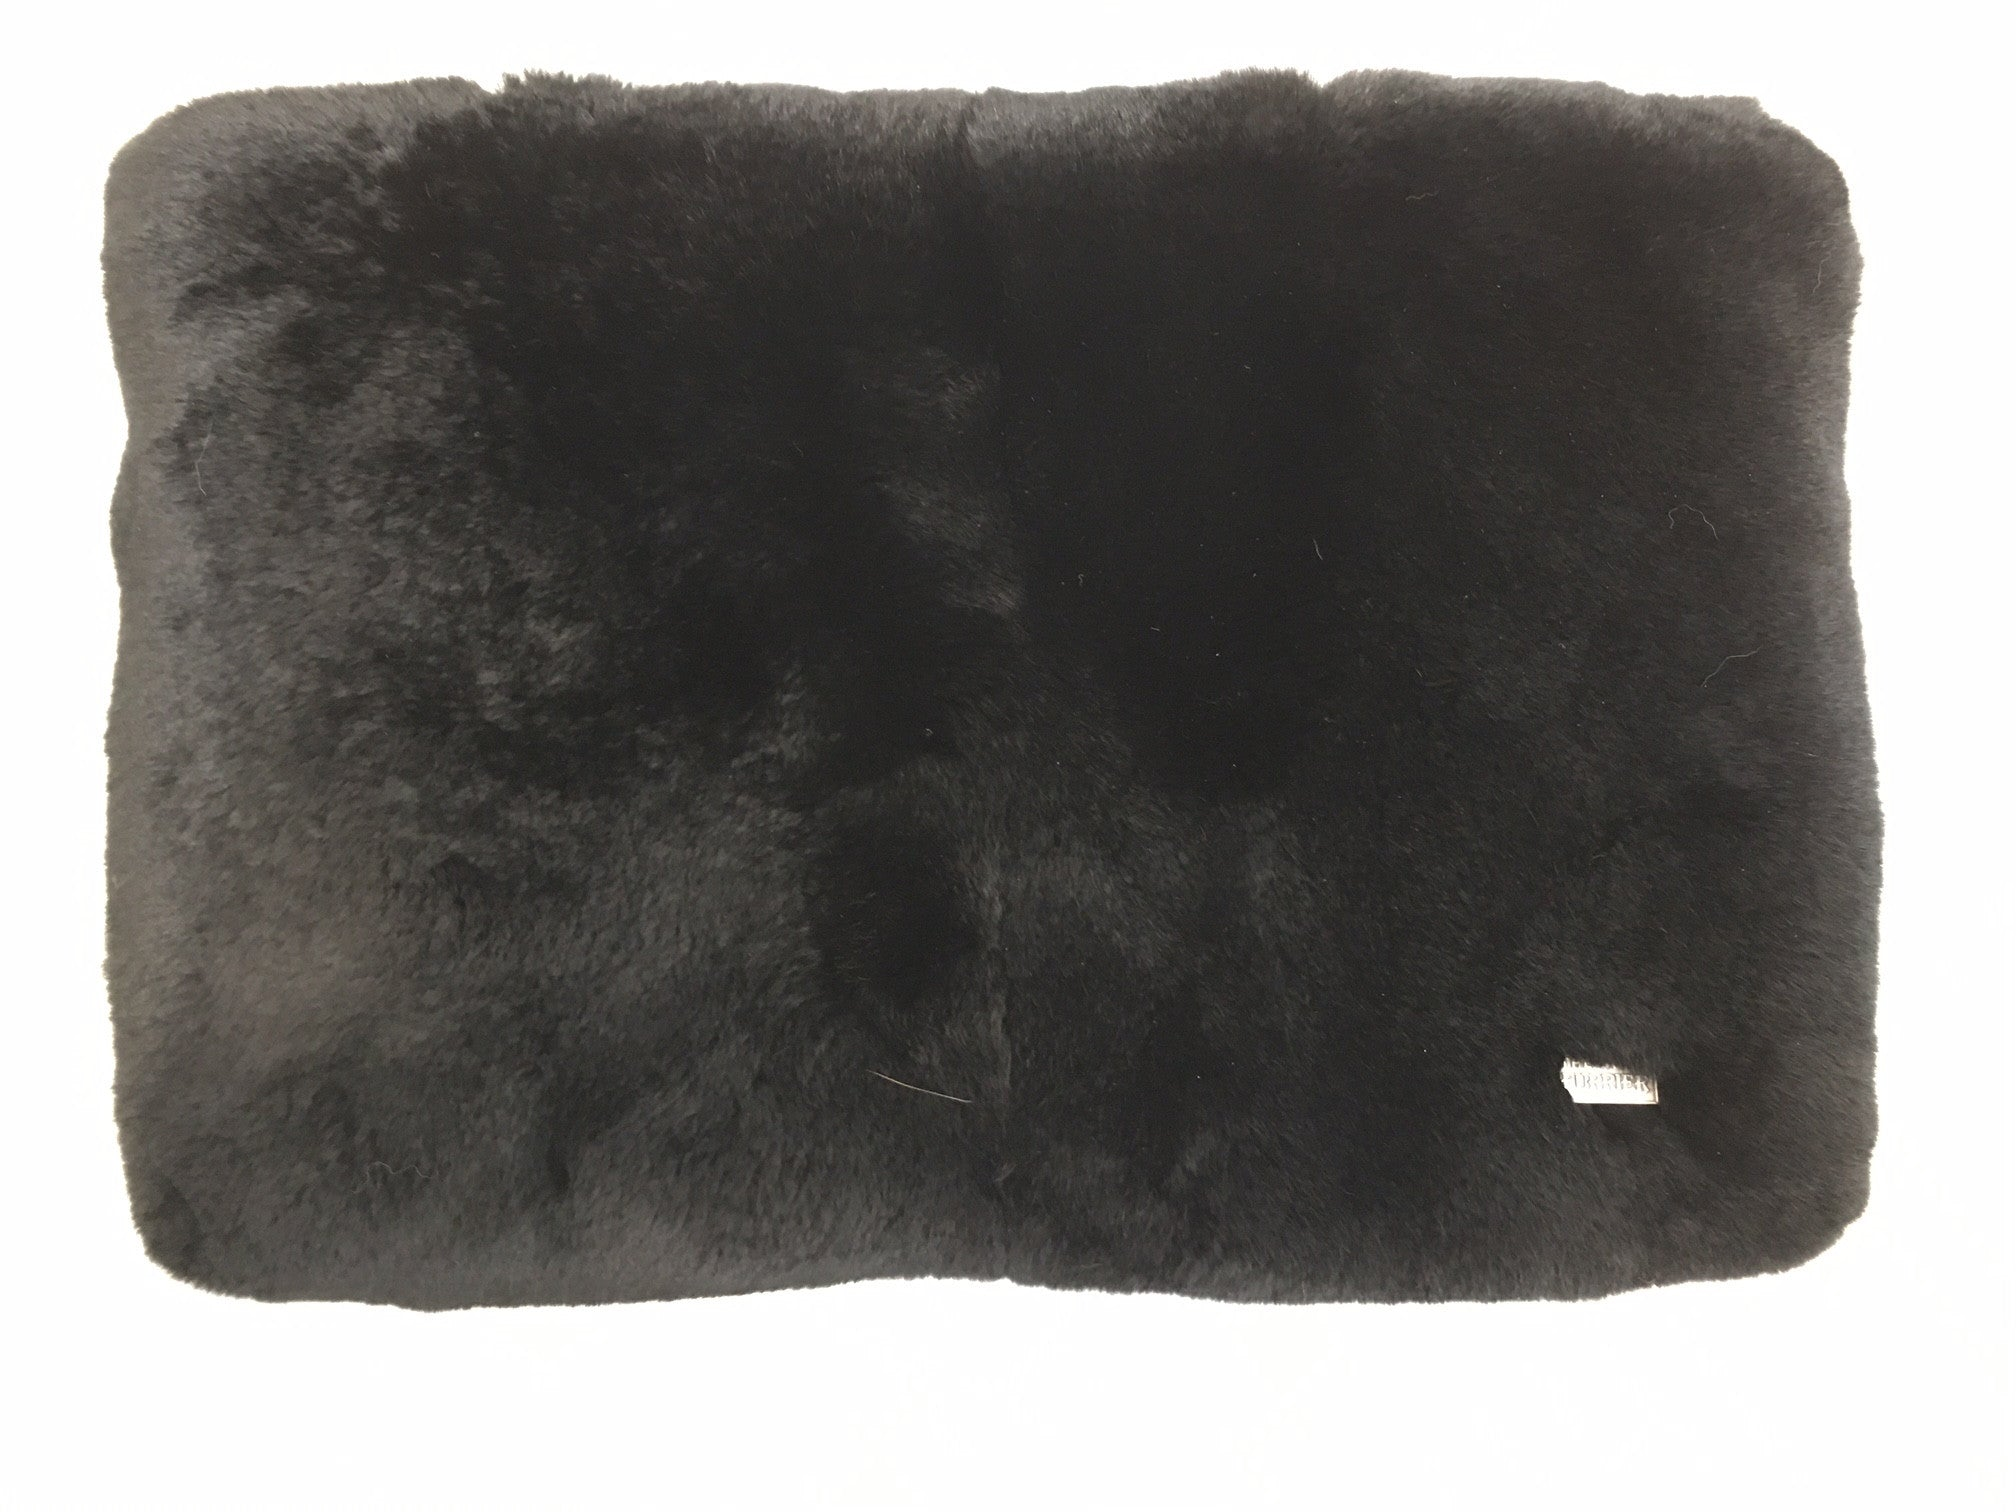 x Oversized Rex Clutch Bag / Laptop Case in Noir - The Soho Furrier